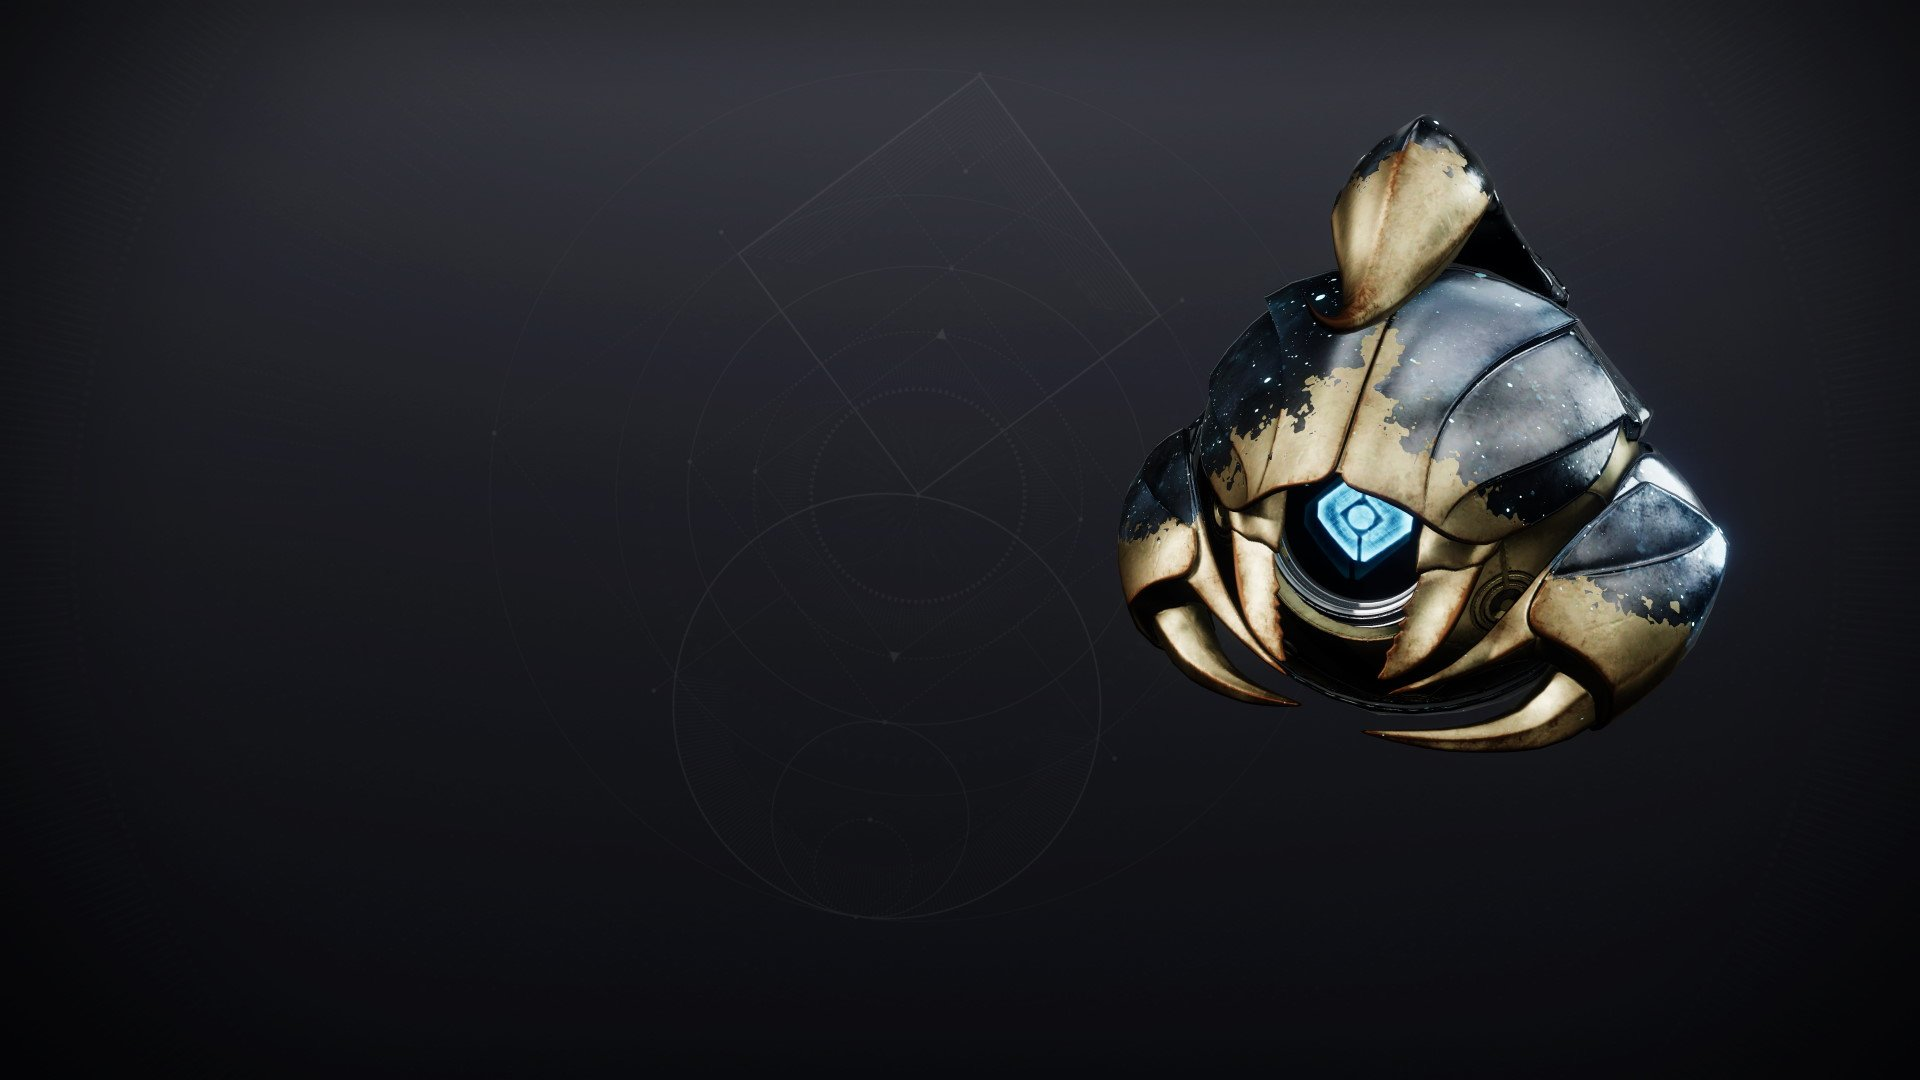 An in-game render of the Celestial Shell.